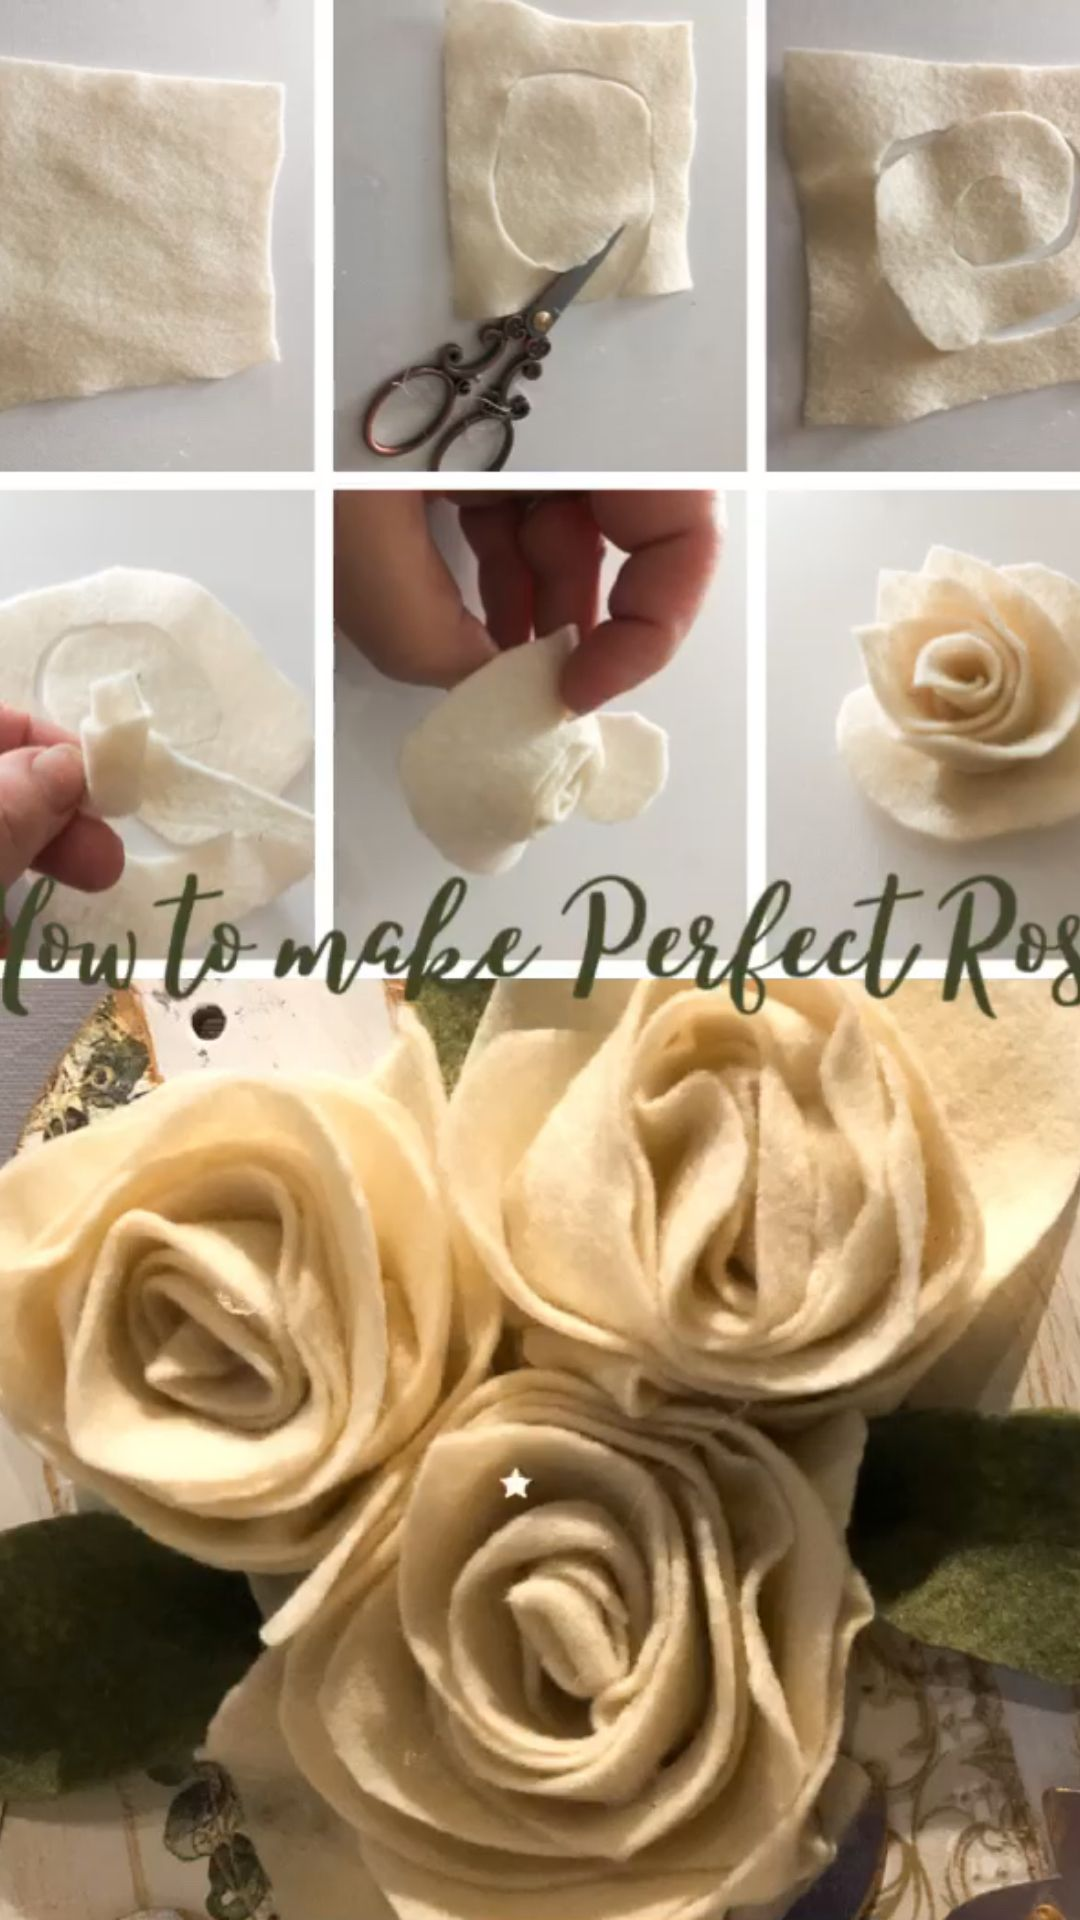 How to make easy rose